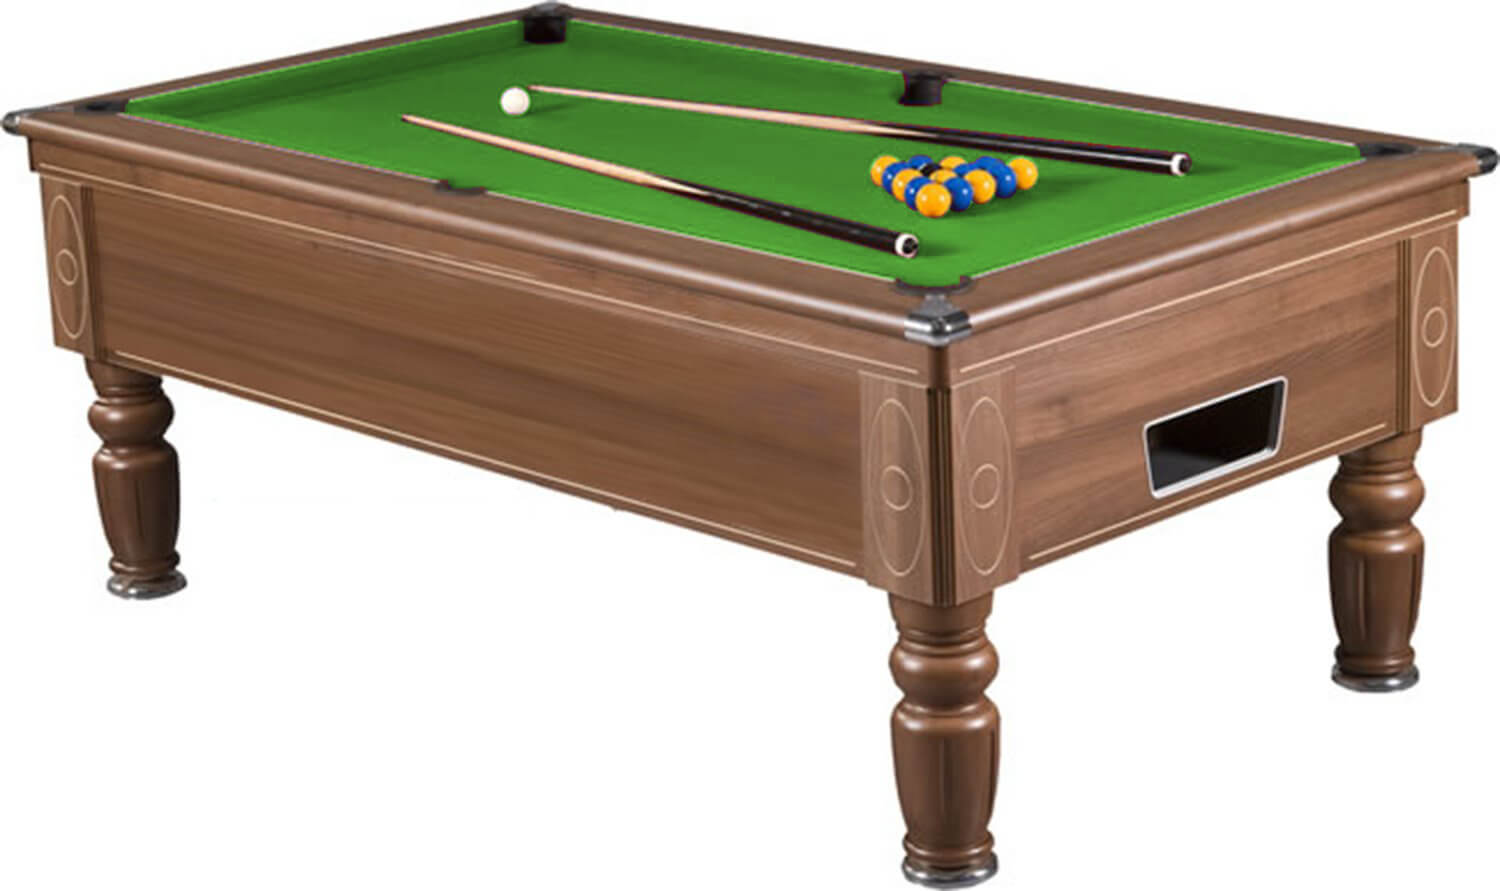 pool plus brunswick table asp billiard productdetails metro views foot alternative tables tournament